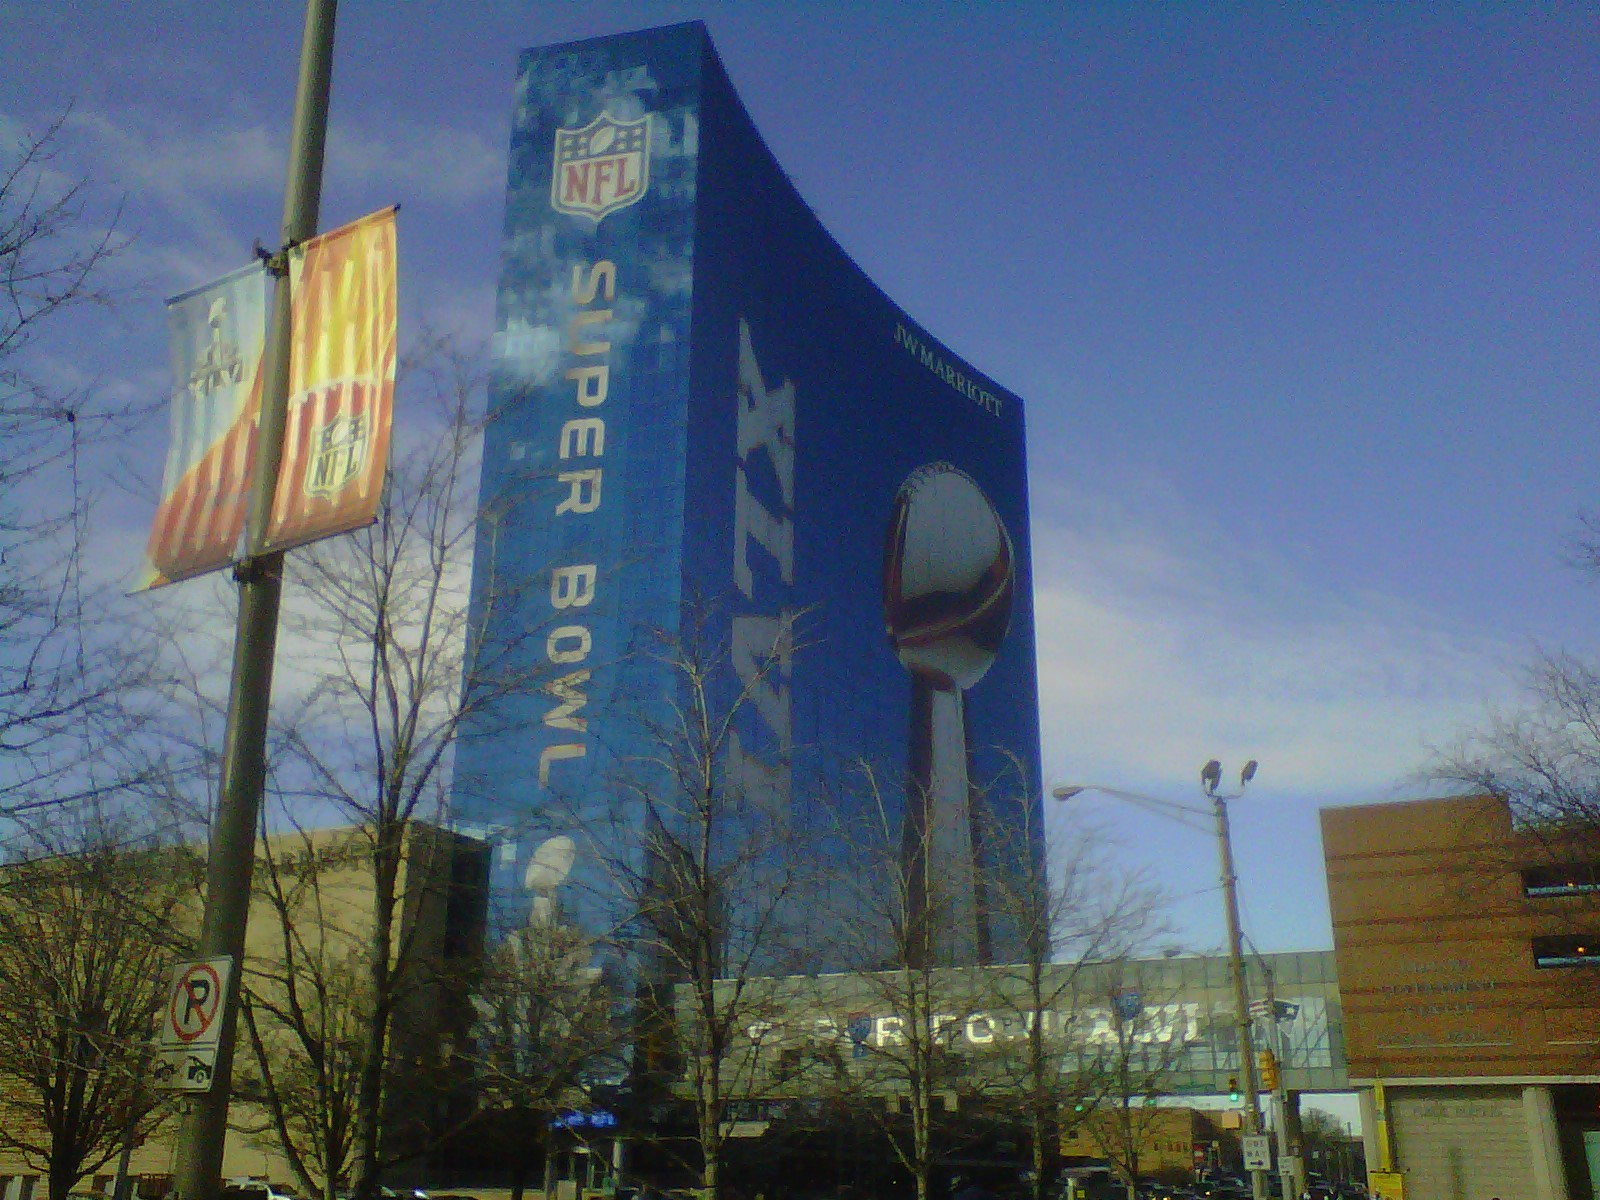 Working the Super Bowl in Broadcasting-img00490-20120130-1451.jpg